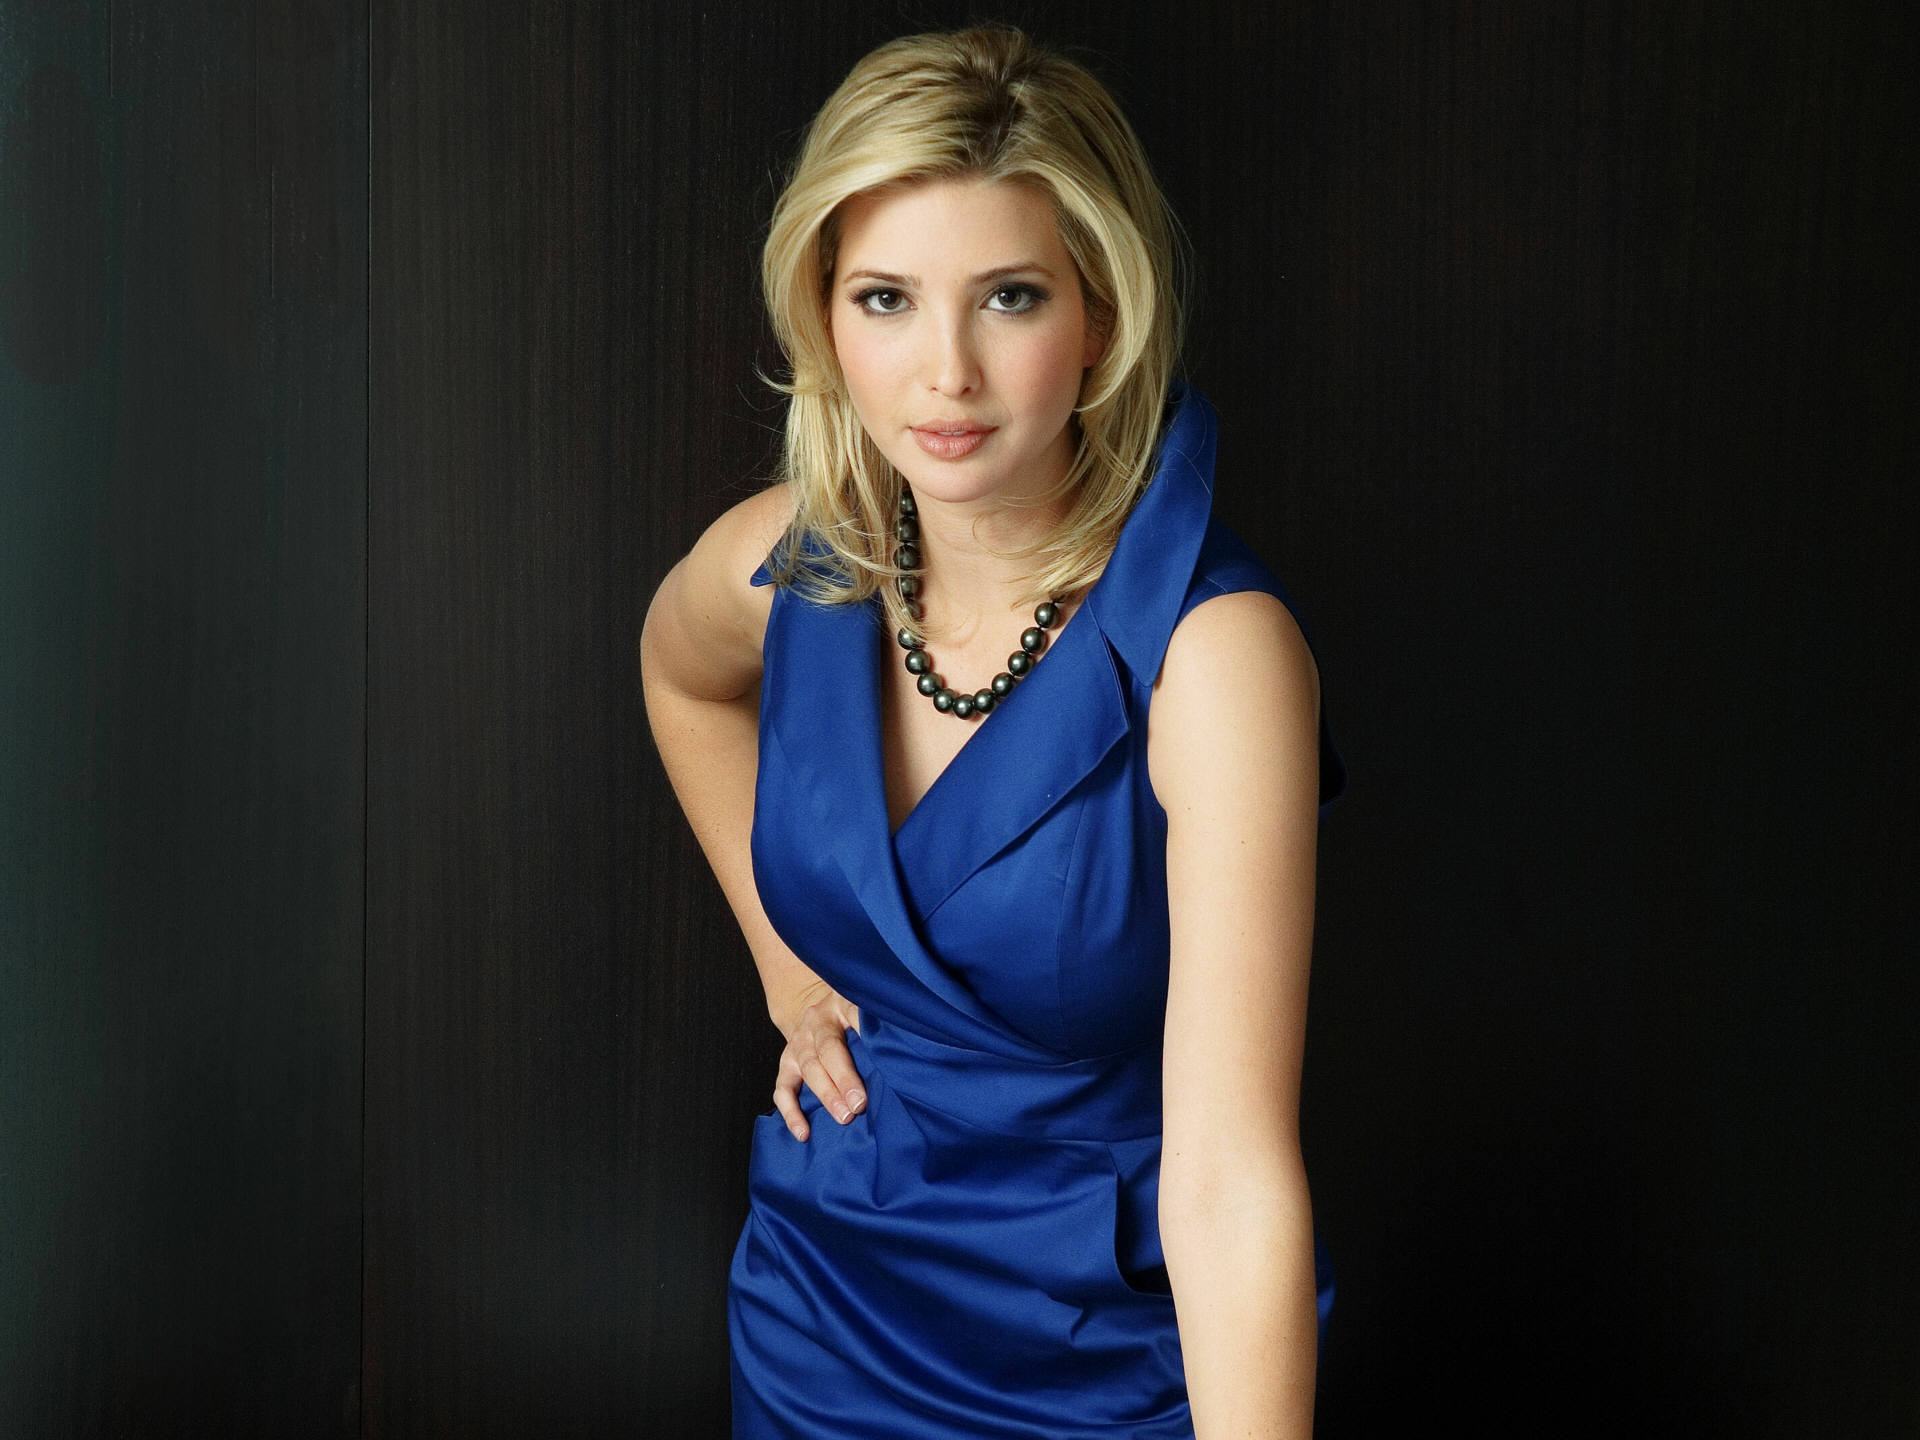 ivanka trump wallpaper 60243